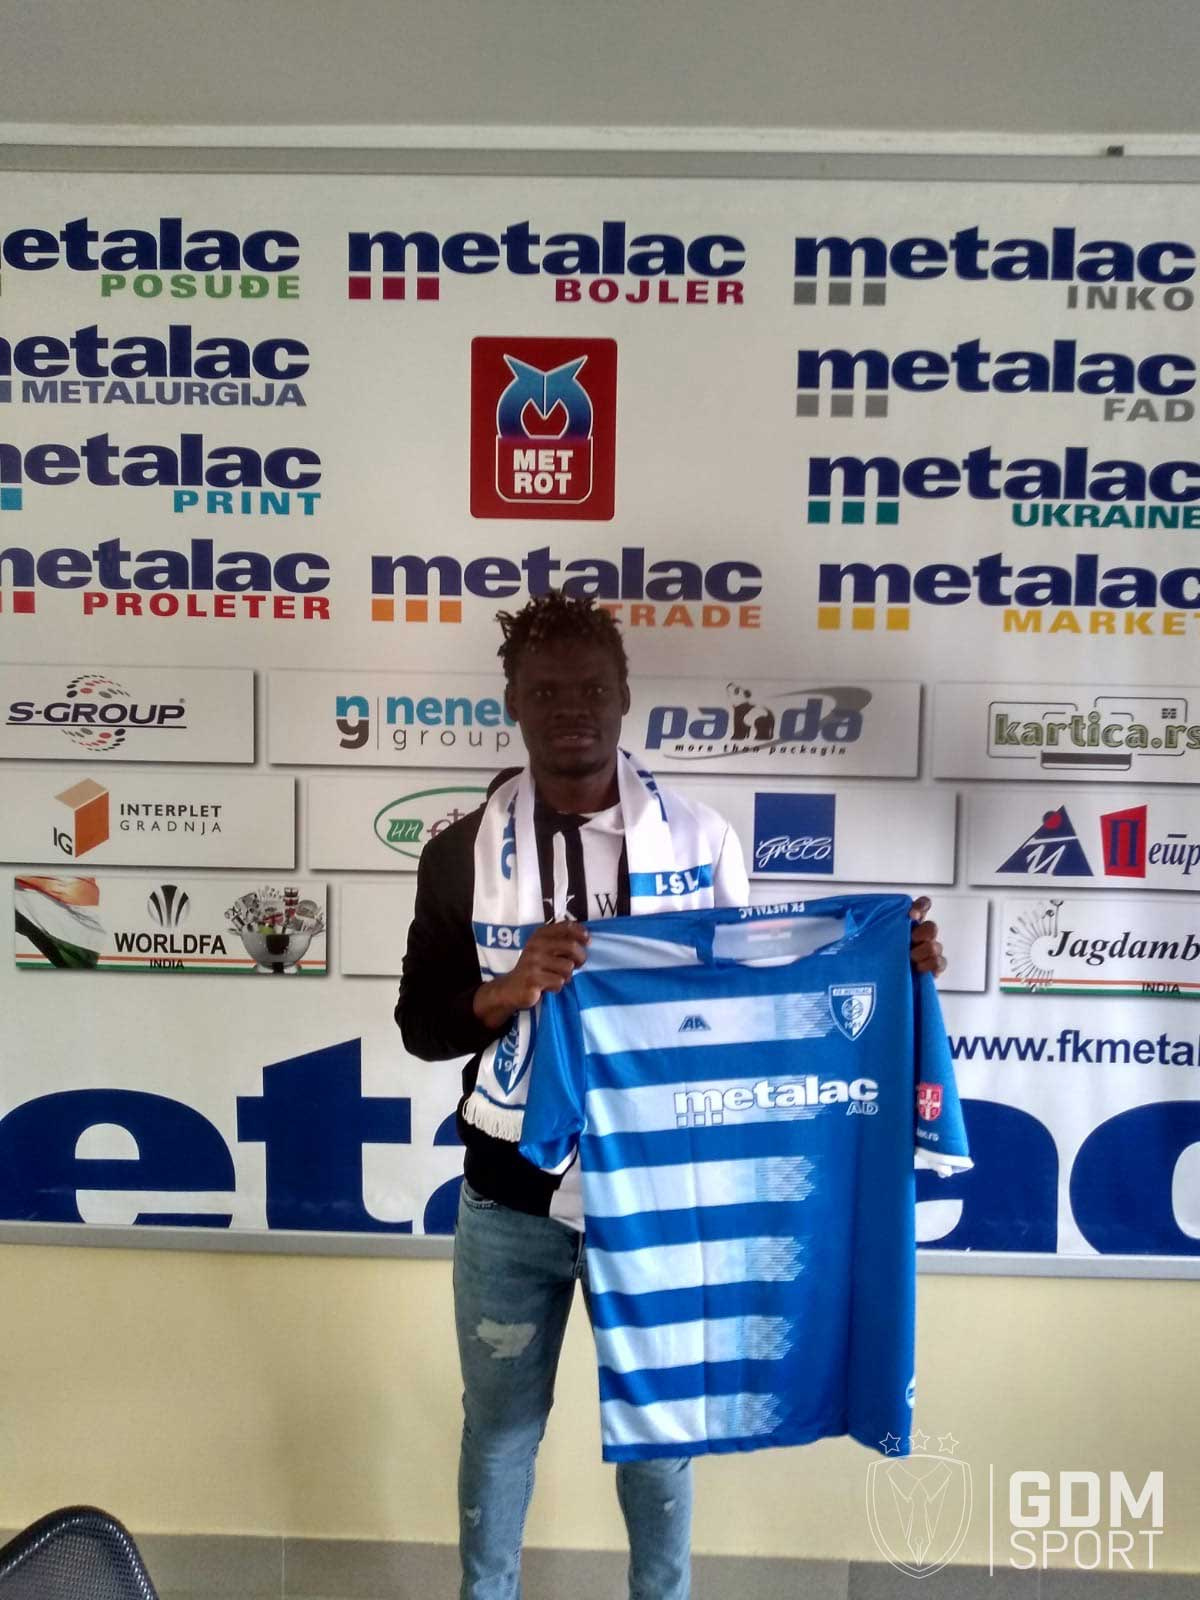 Vieljeux Prestige Mboungou extended 3 year deal with Metalac FC